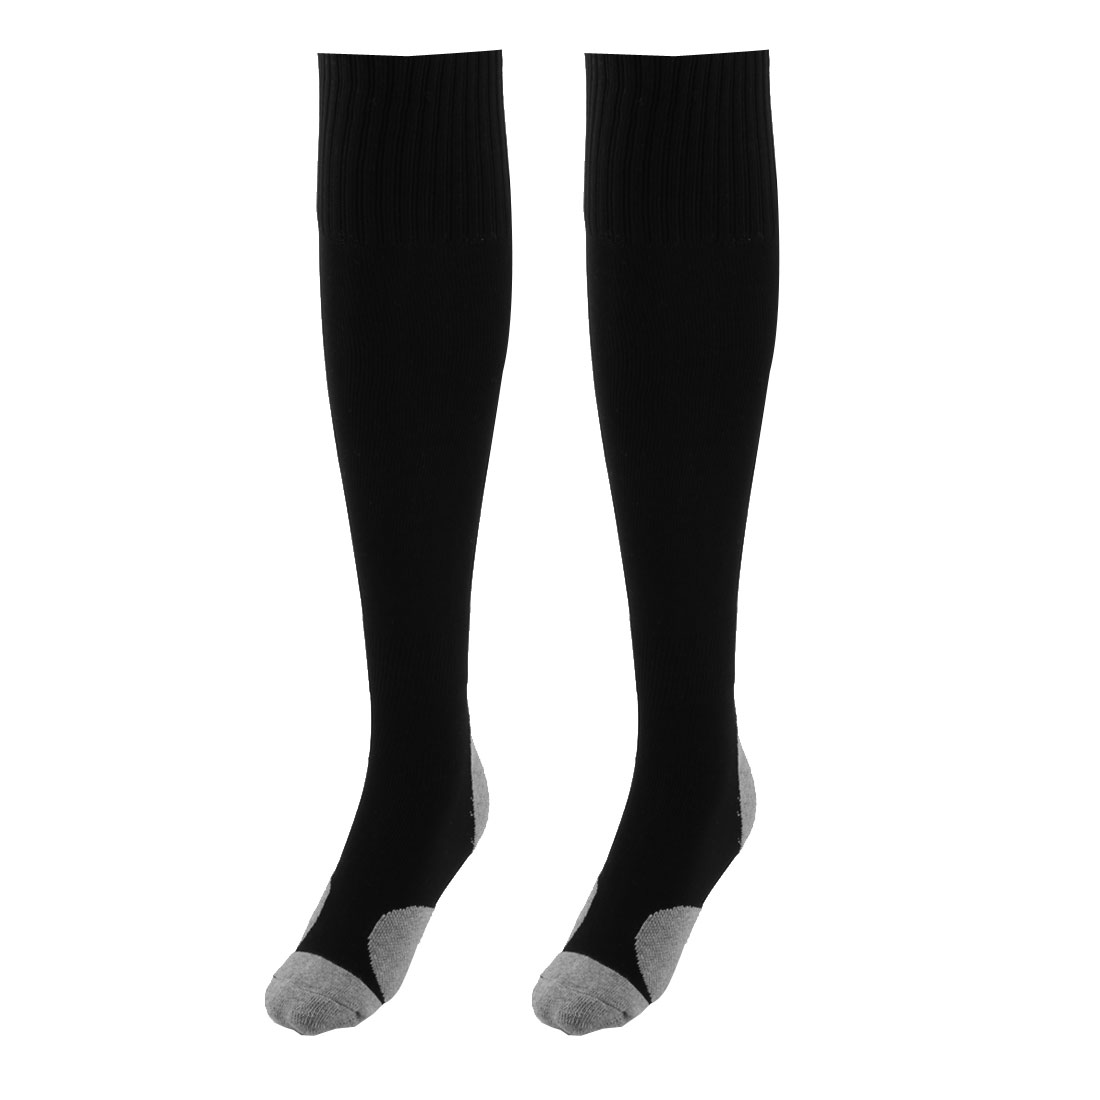 Unisex Nylon Anti Slip Breathable Elastic Volleyball Rugby Football Soccer Long Socks Black Pair